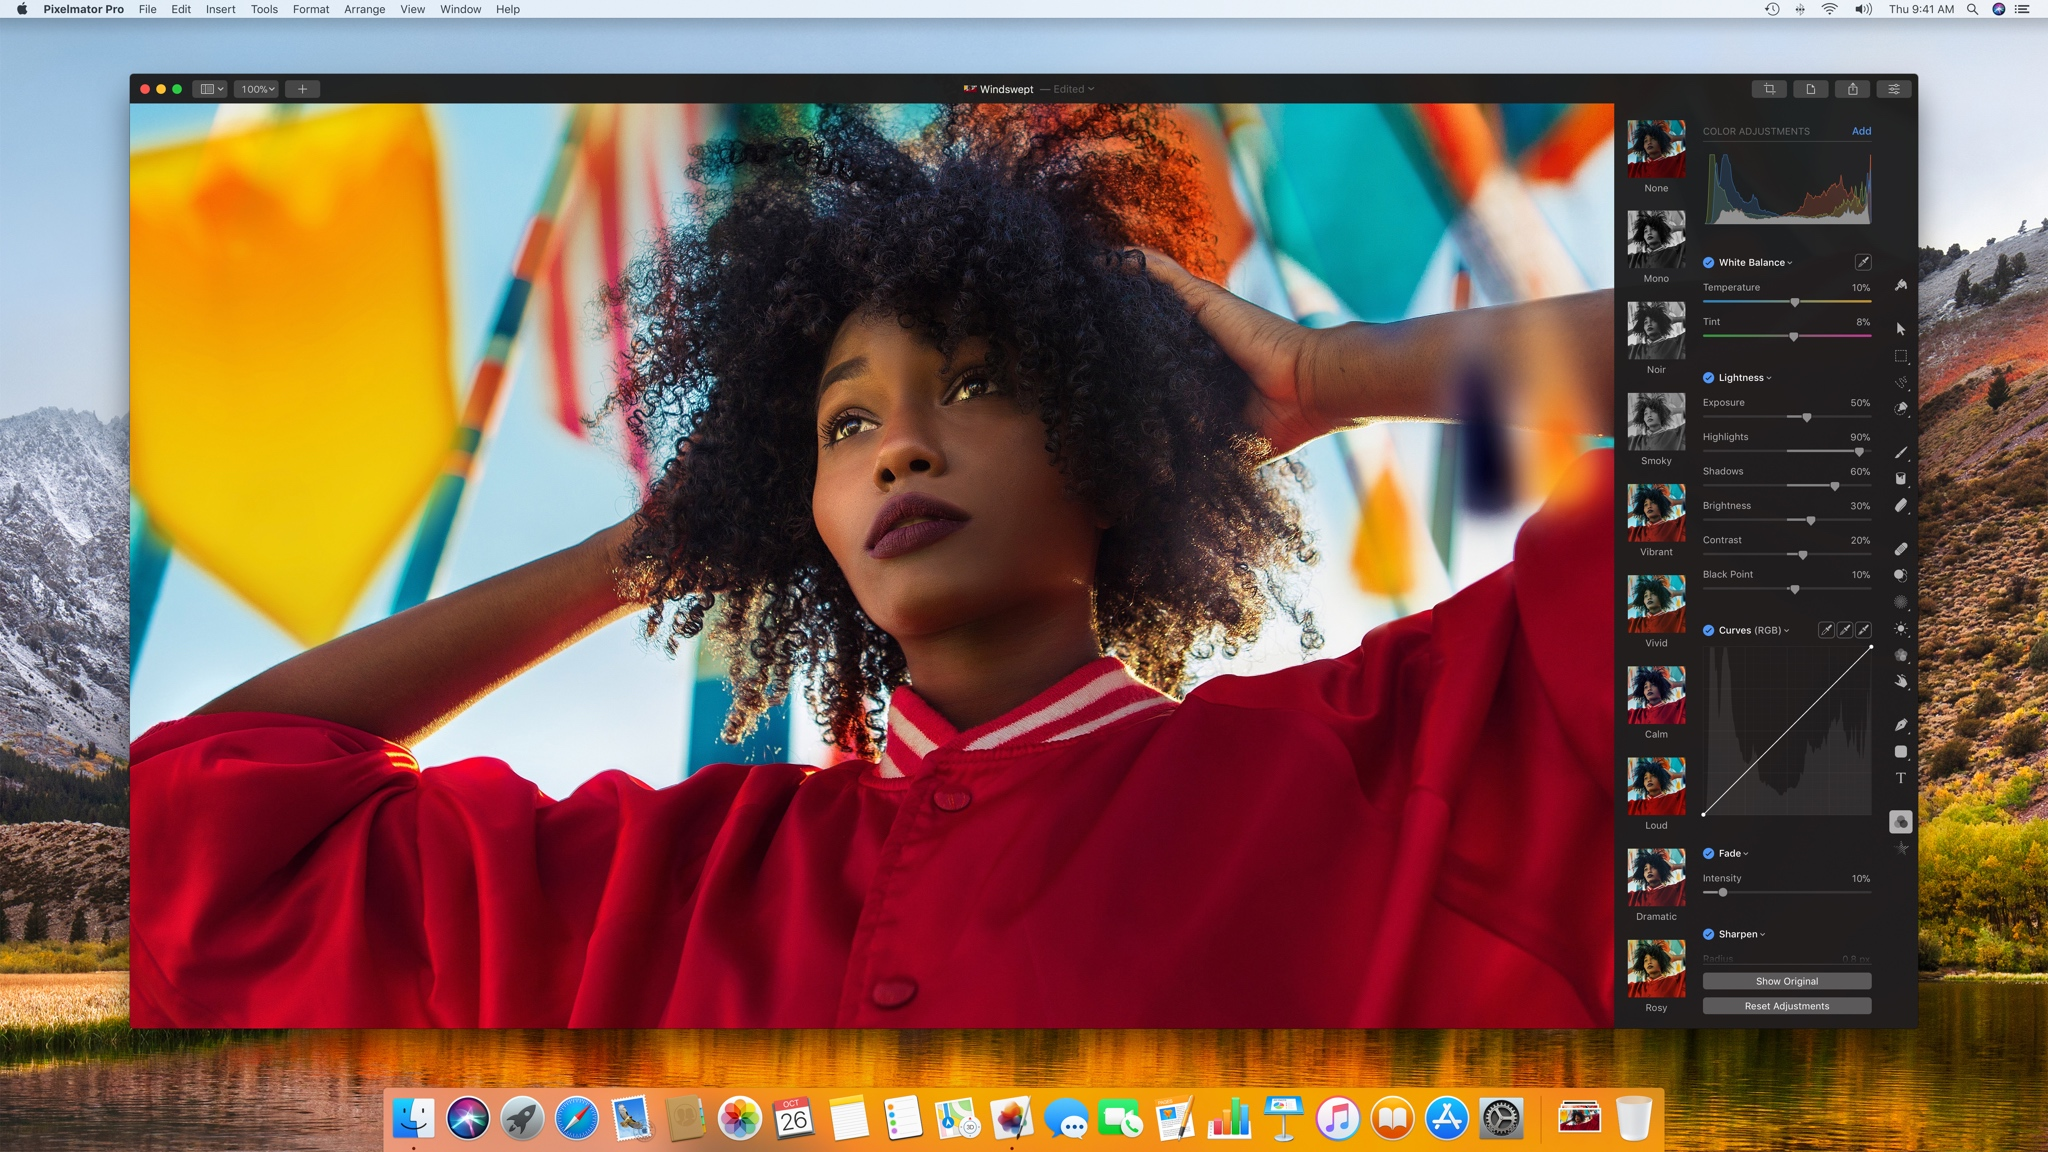 Pixelmator Pro Gets Update - Brings Large Number of Improvements